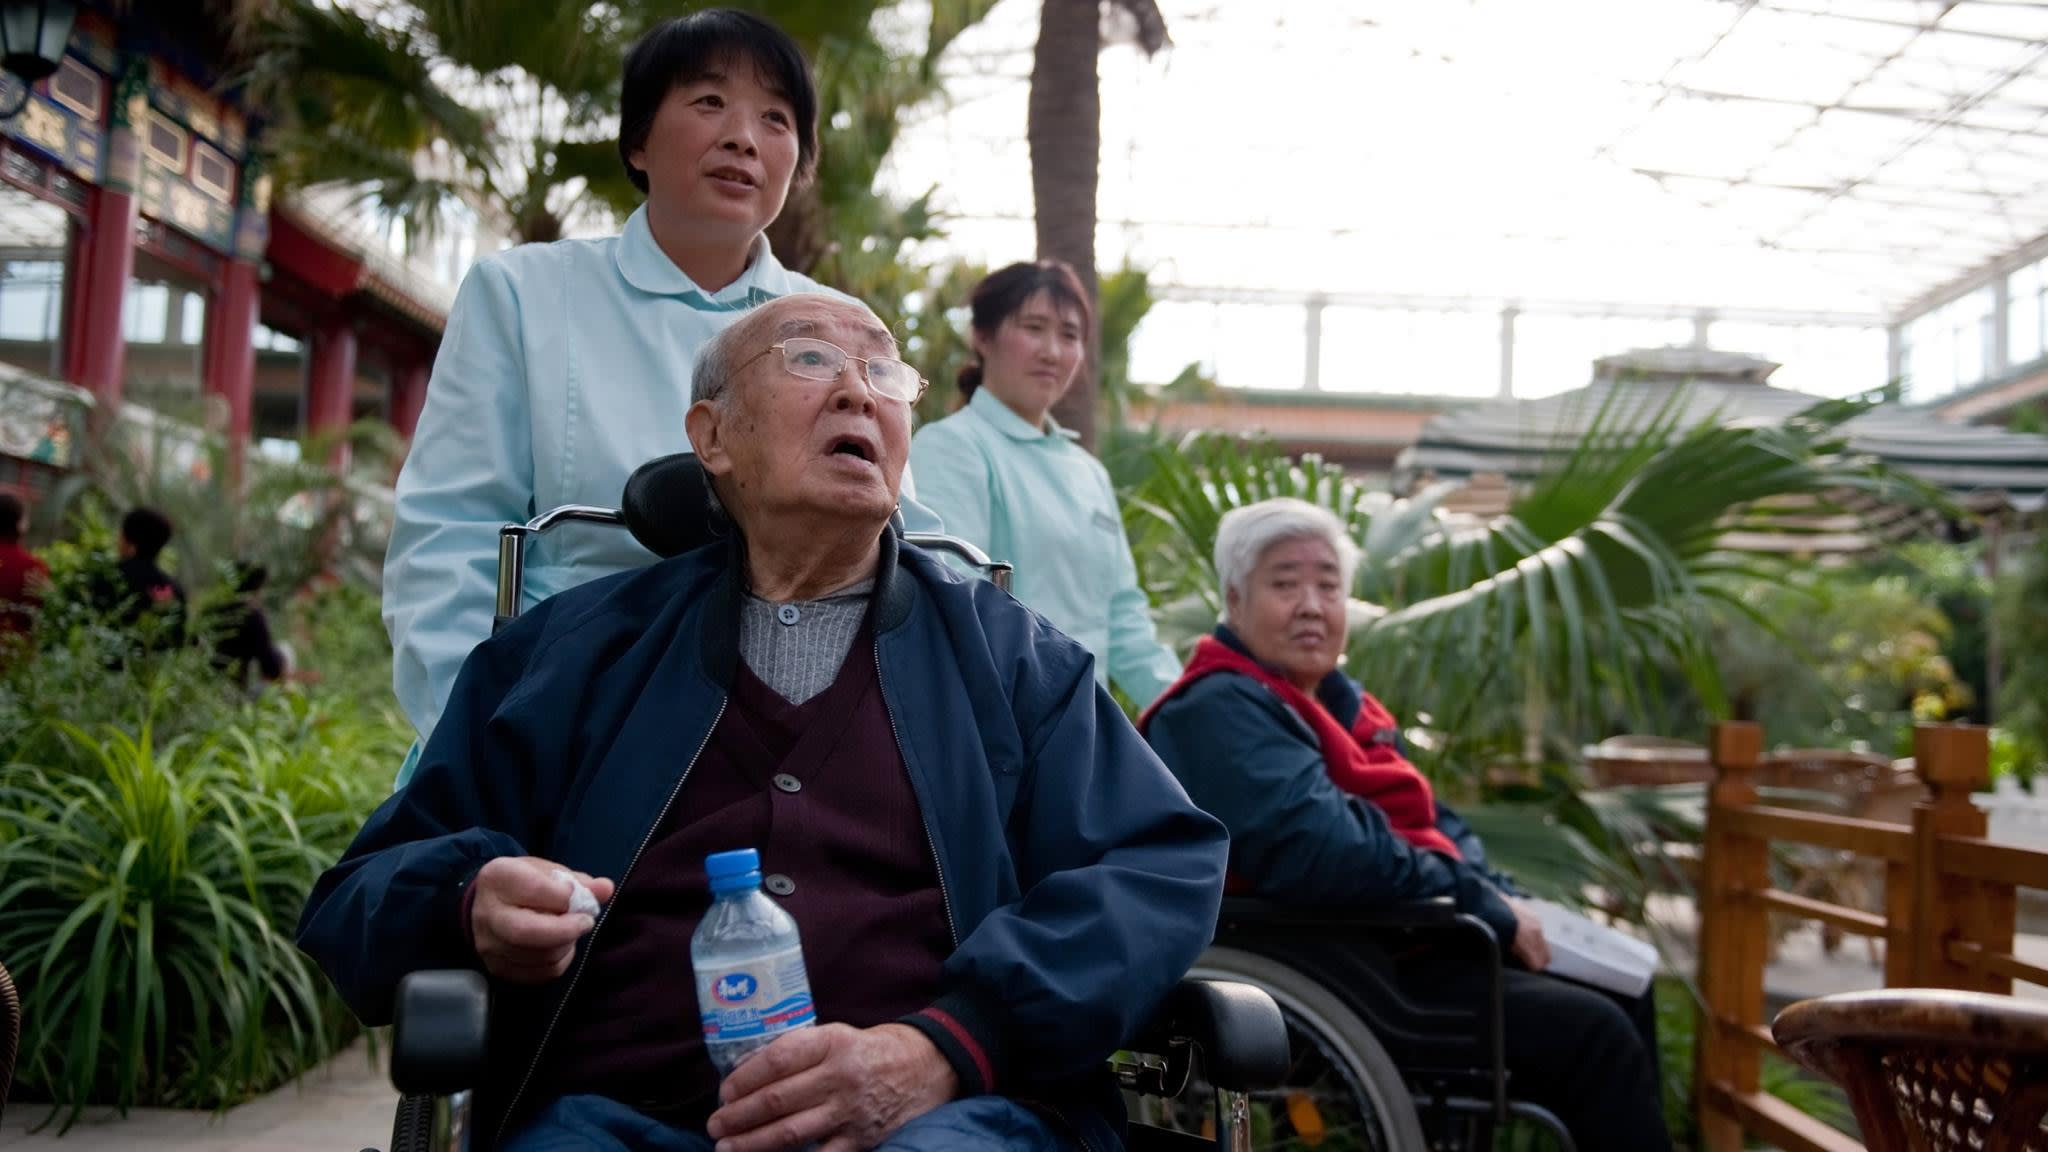 The Silver Economy: Japan sets template for private sector care | Financial Times